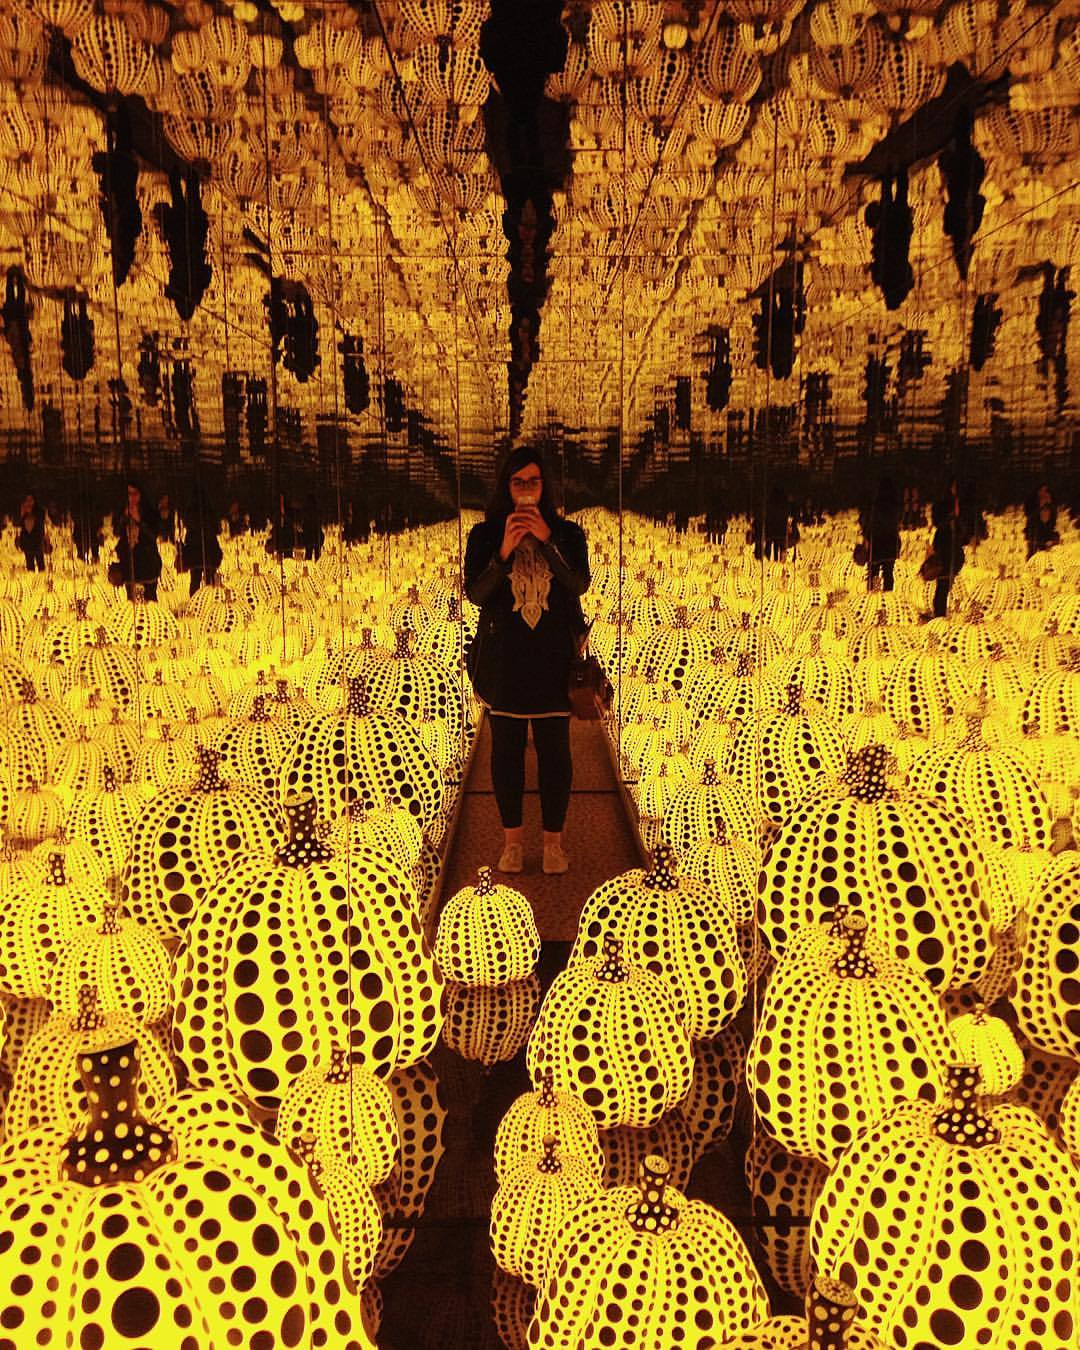 Grateful that #yayoikusama shared her eternal love for pumpkins with #London 🎃 #instakusama